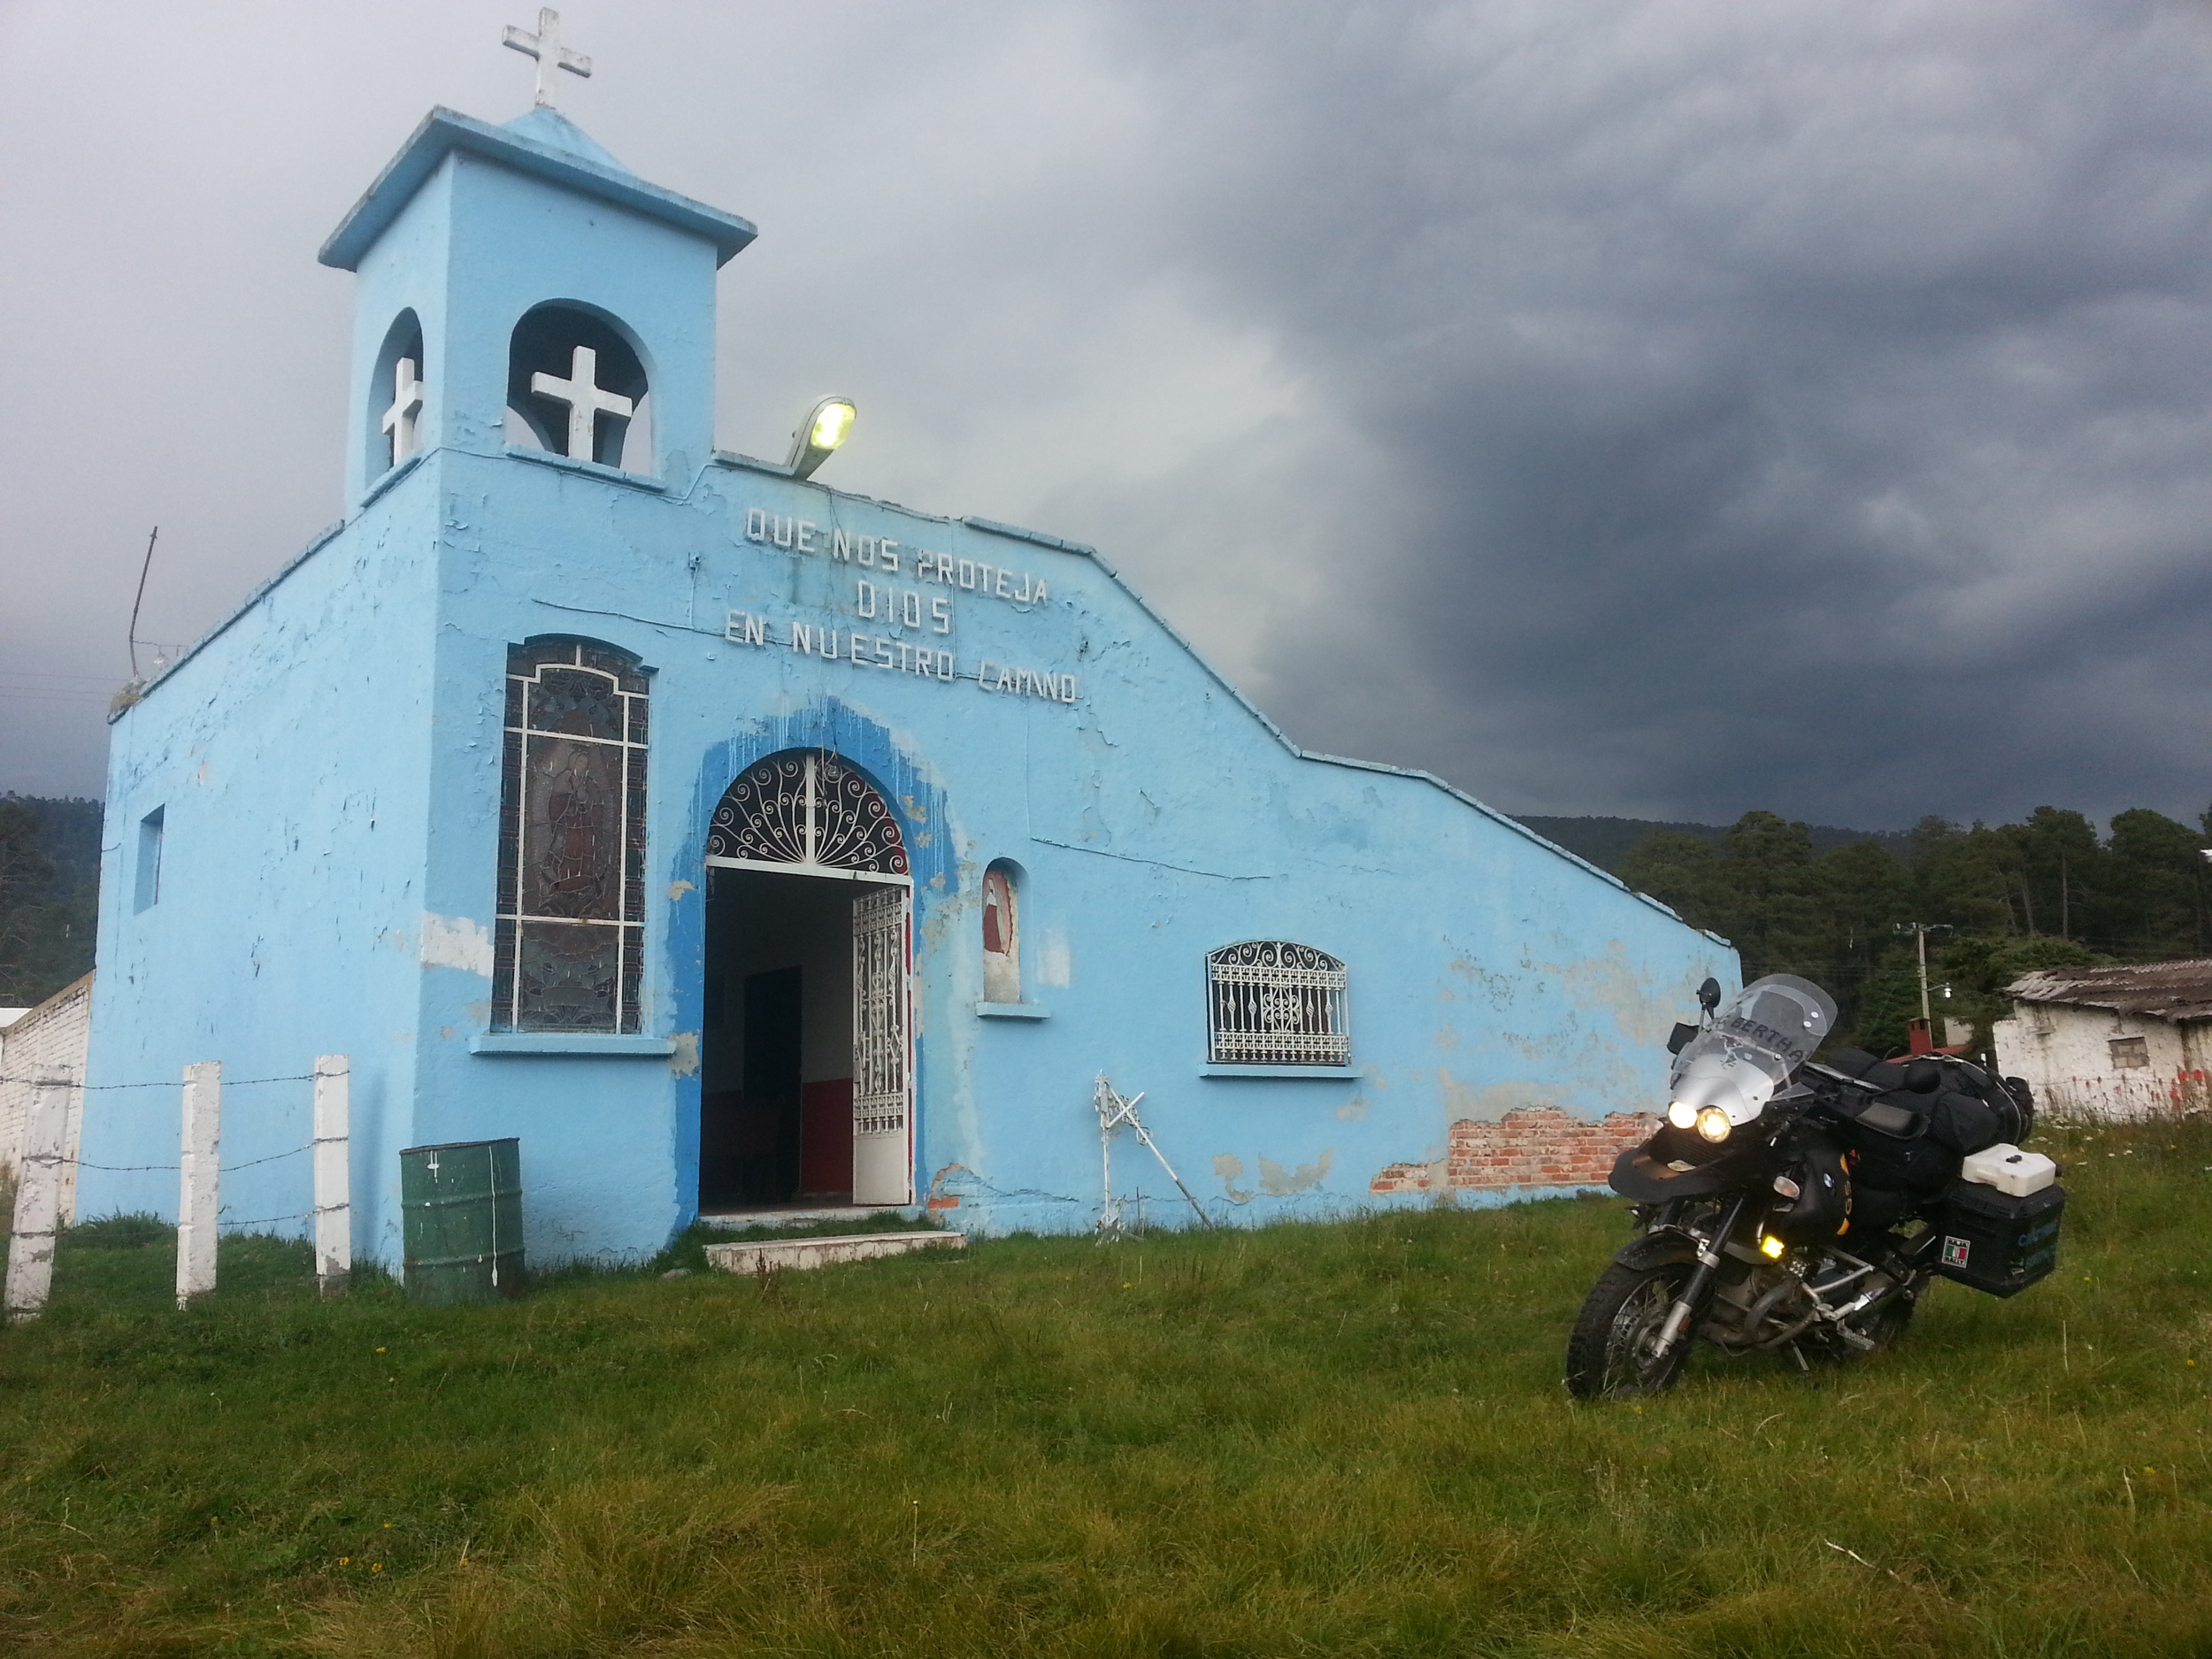 Baby blue church...you don't see that everyday.